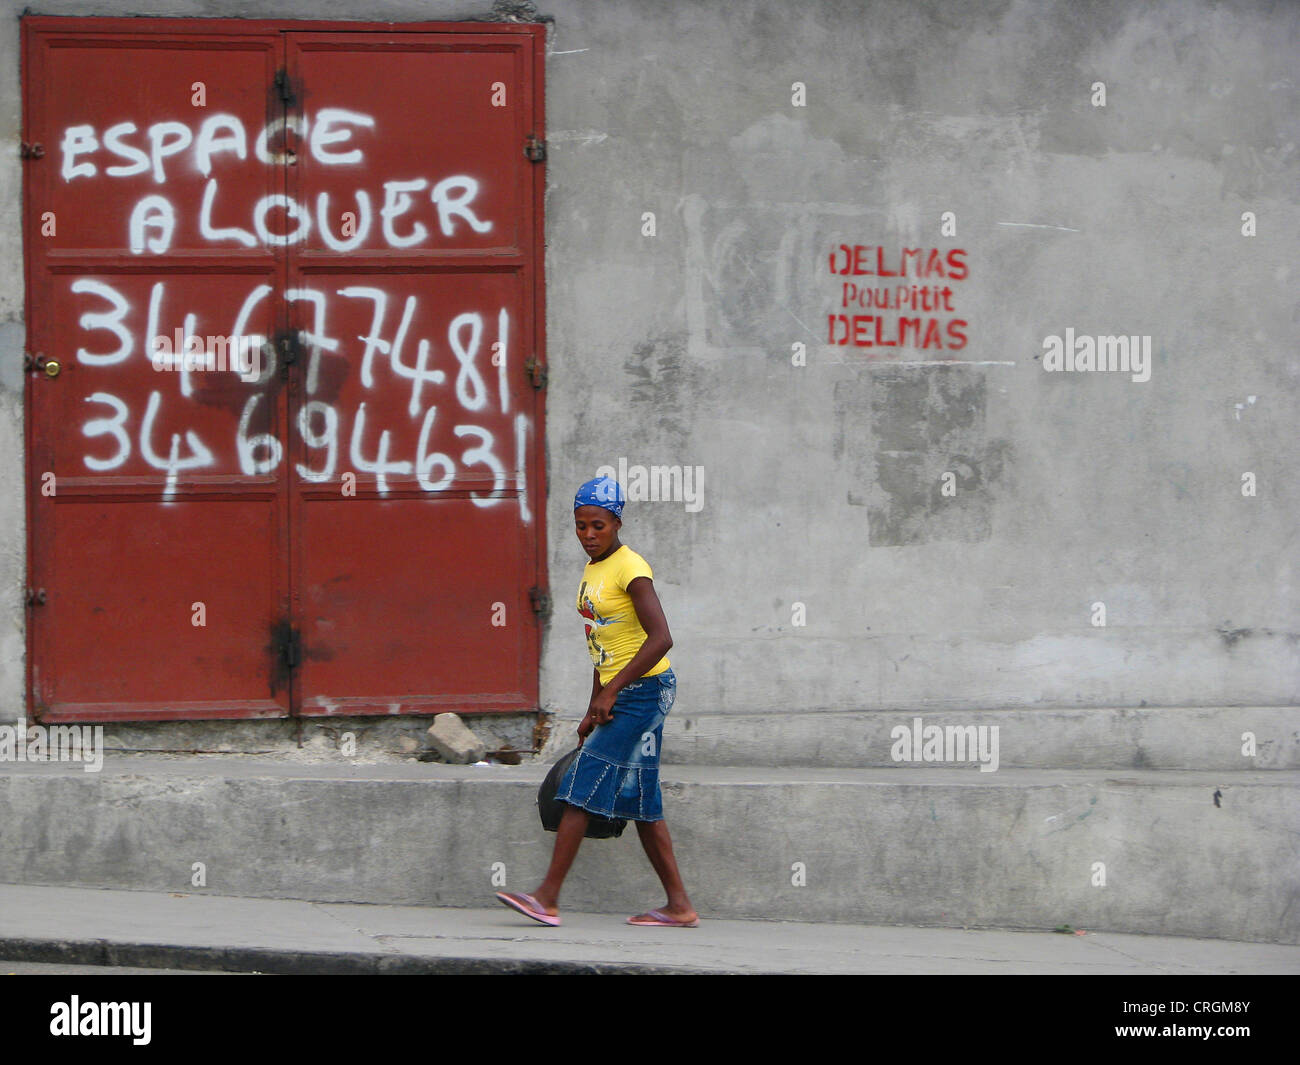 woman walking along a concrete wall with an iron door offering space for rent, Haiti, Province de l'Ouest, Delmas, - Stock Image